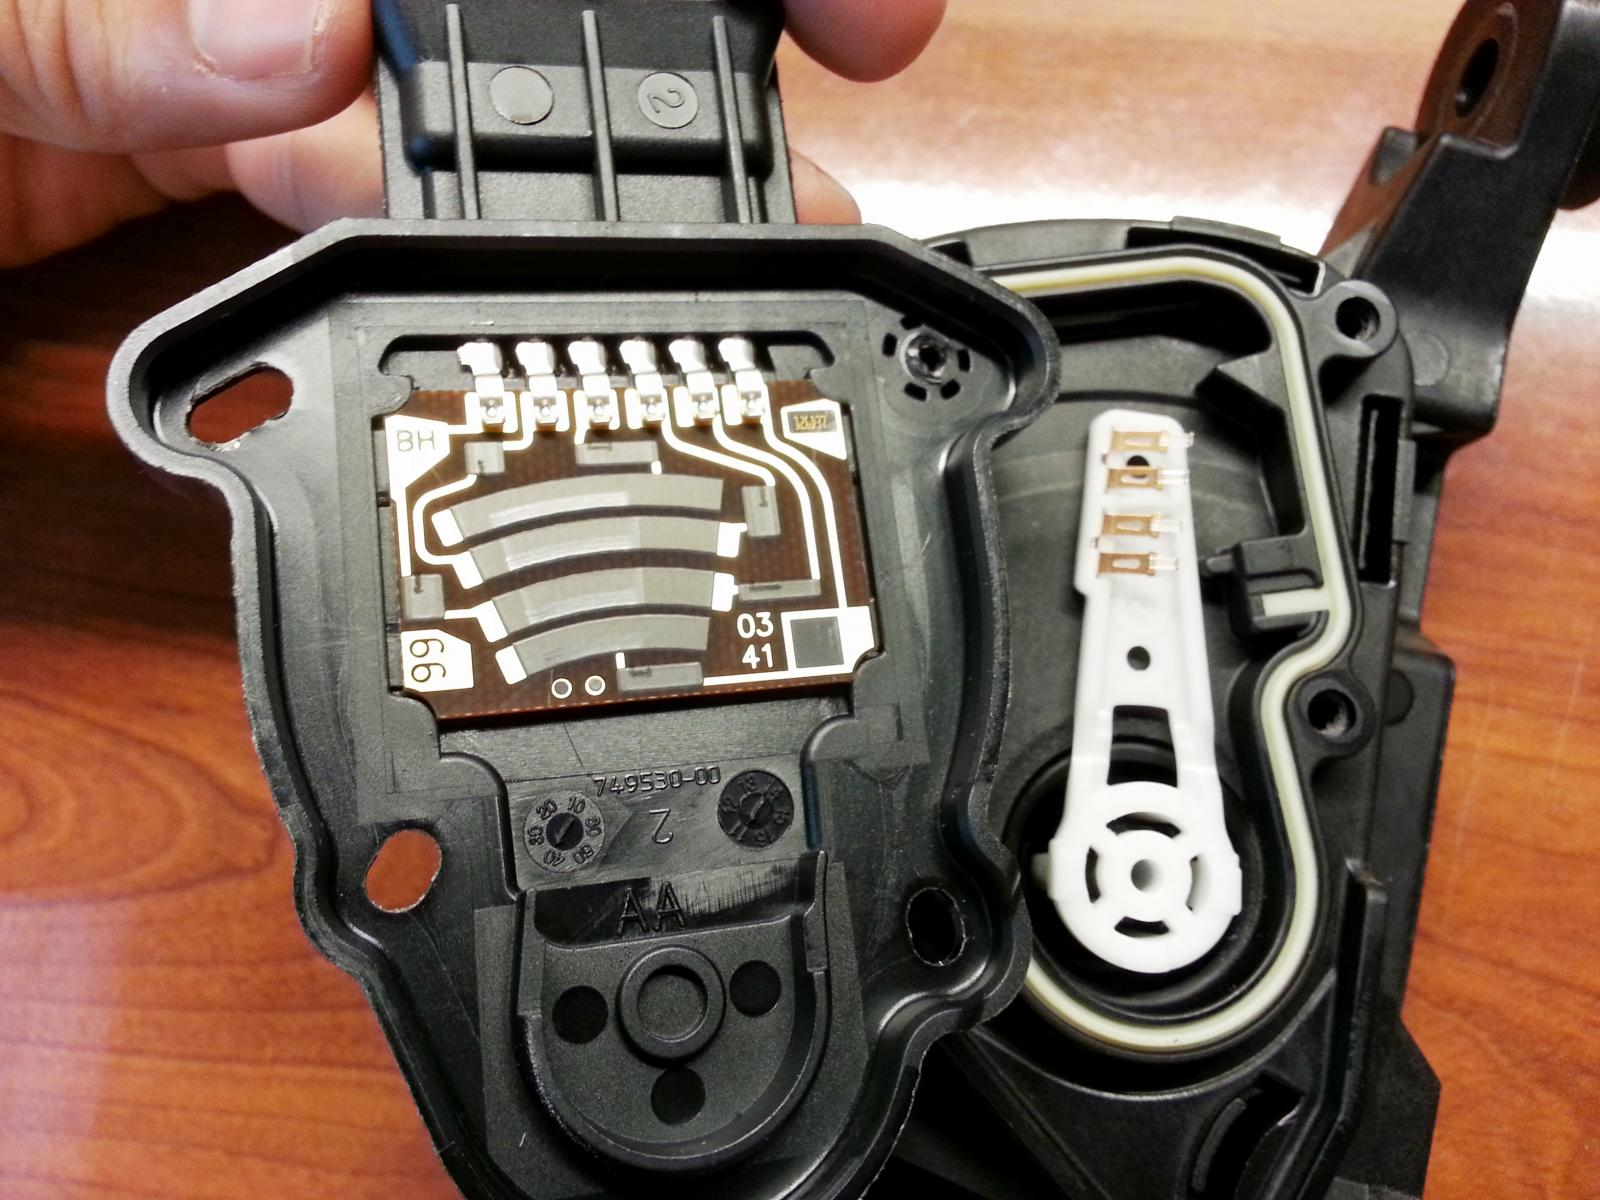 Accelerator pedal mod to increase throttle opening